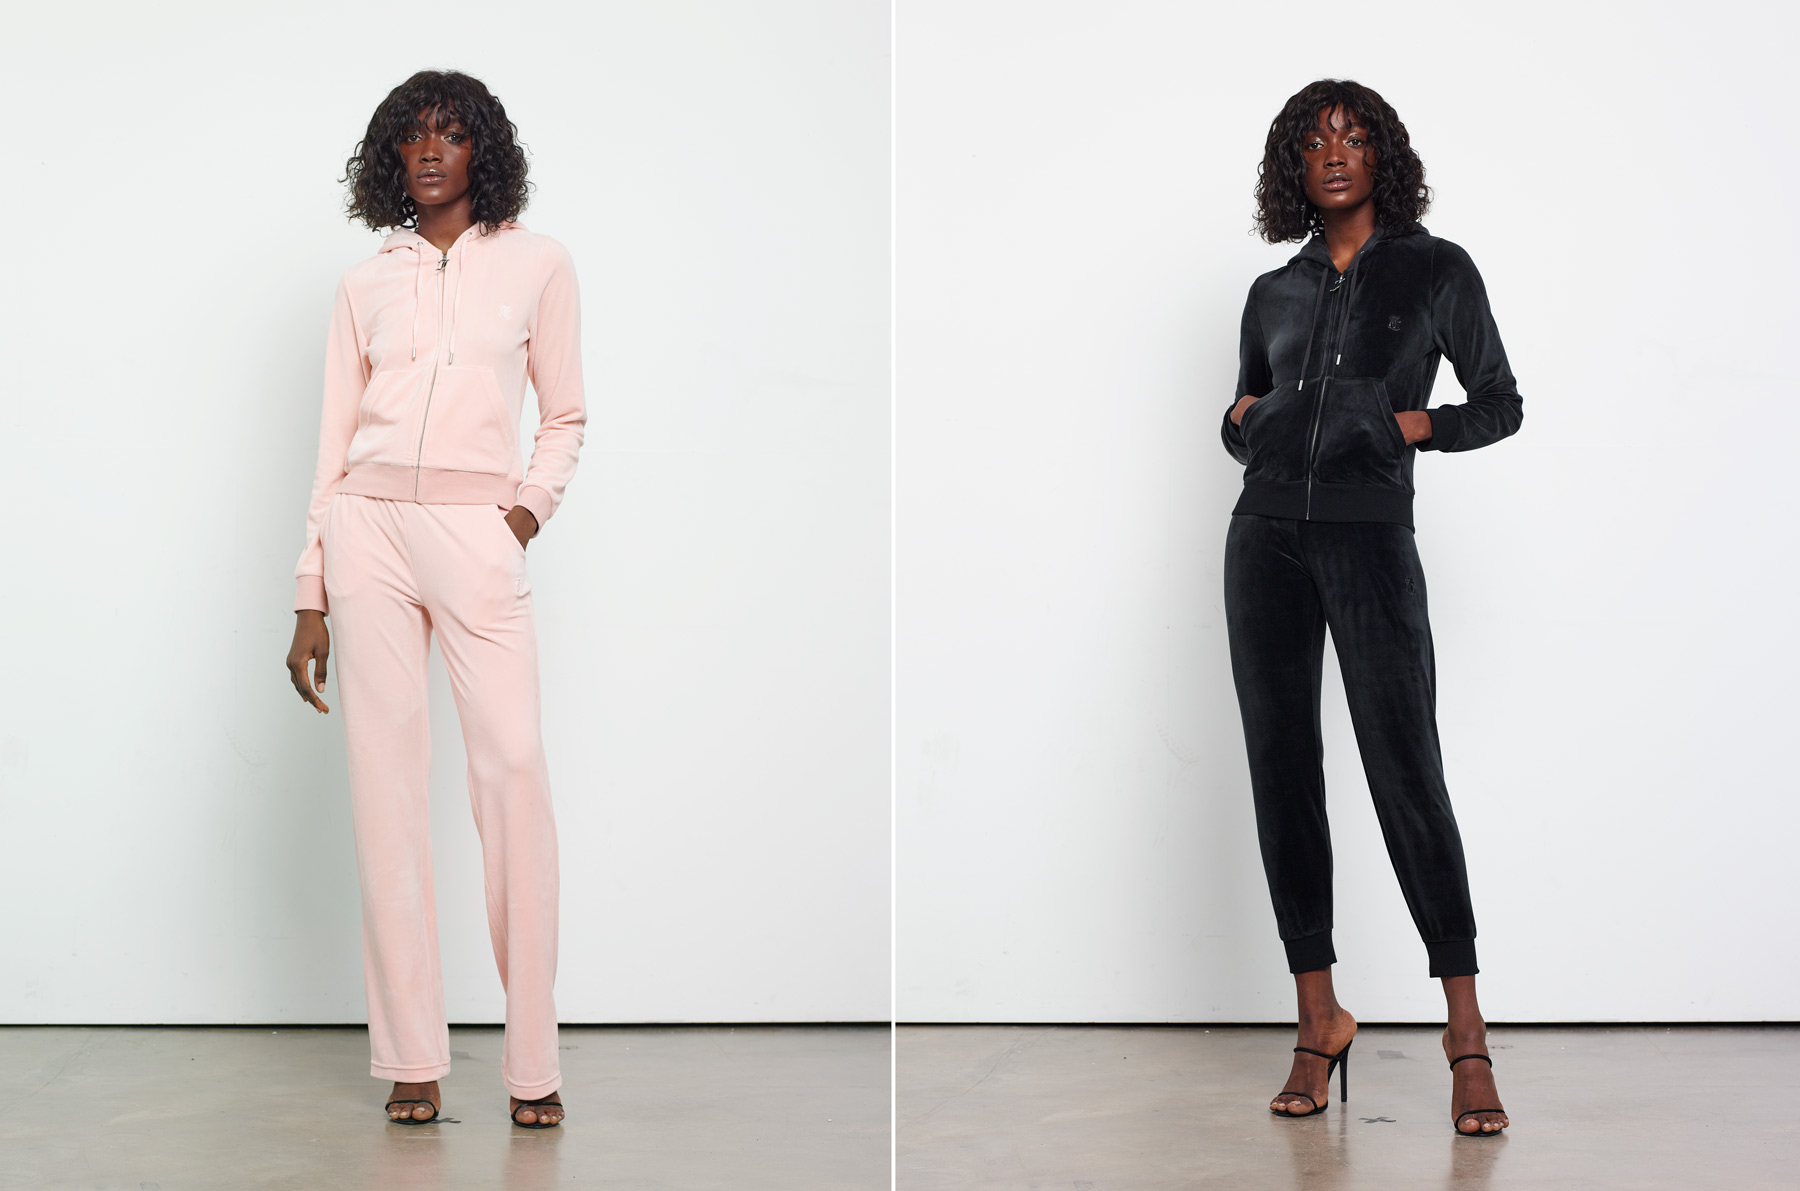 Juicy Couture SS20 online advertising featuring Daberechi Ukoha-Kalu. Photography by Ioannis Koussertari